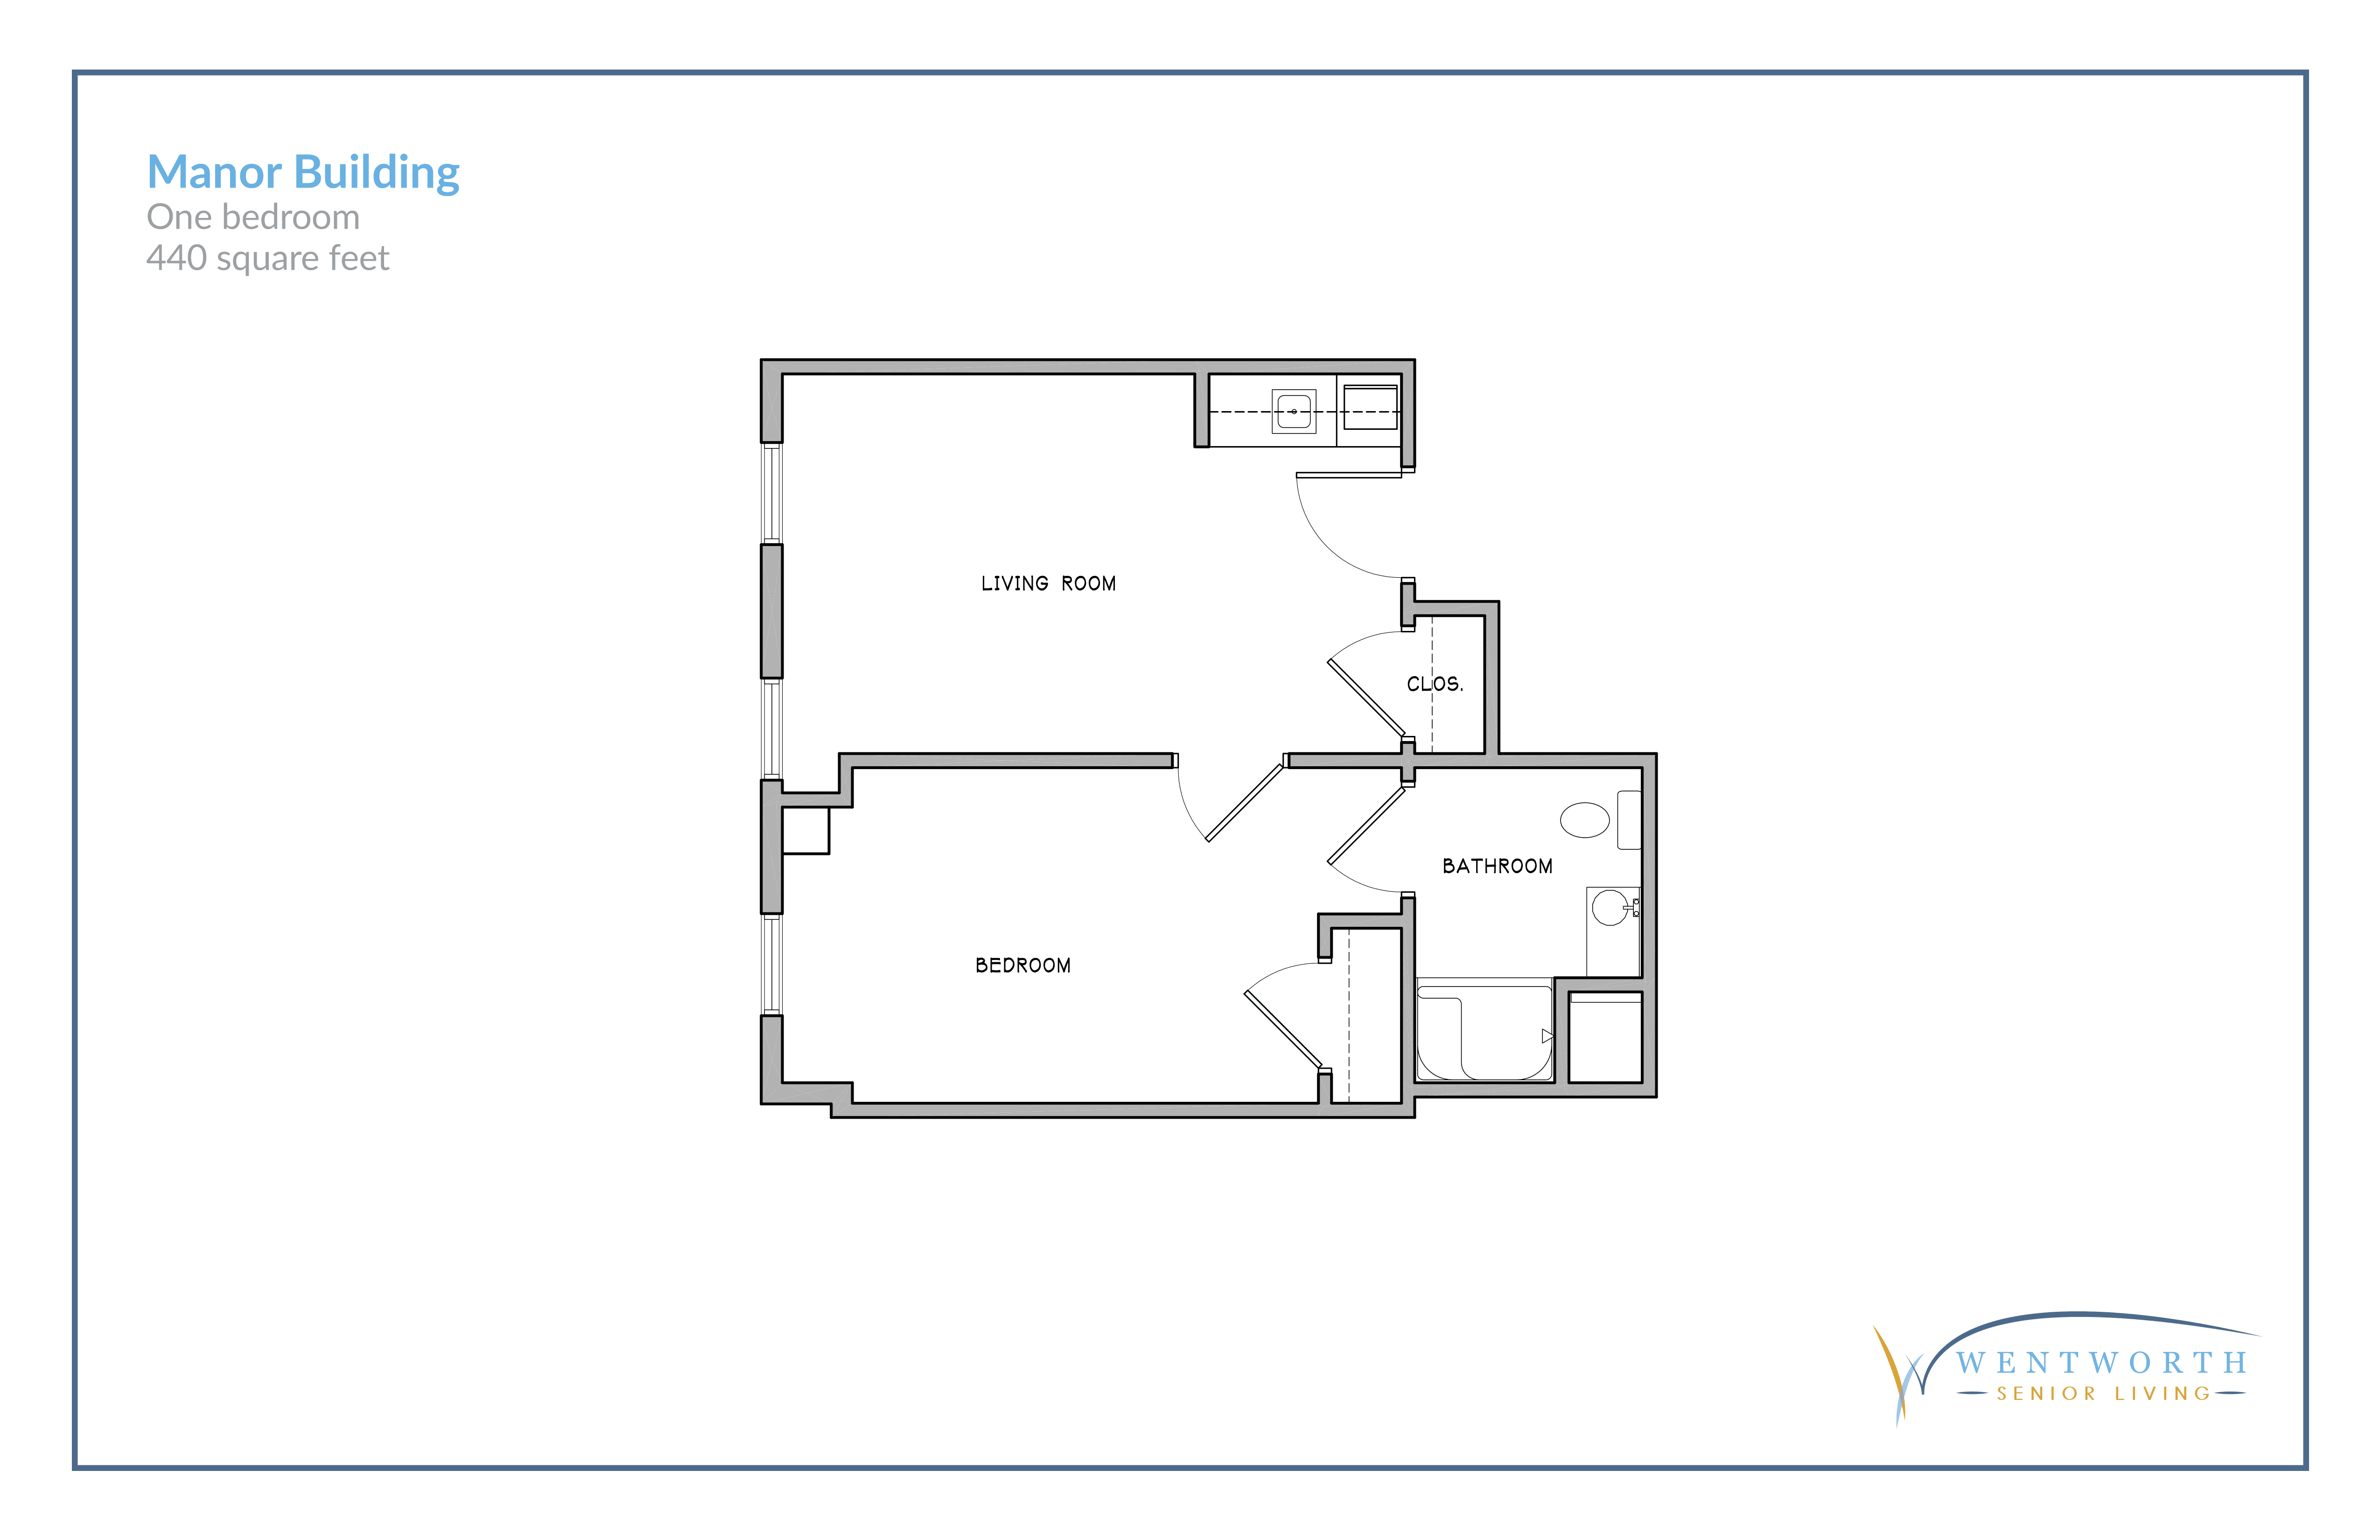 Floor plan for a one bedroom unit.